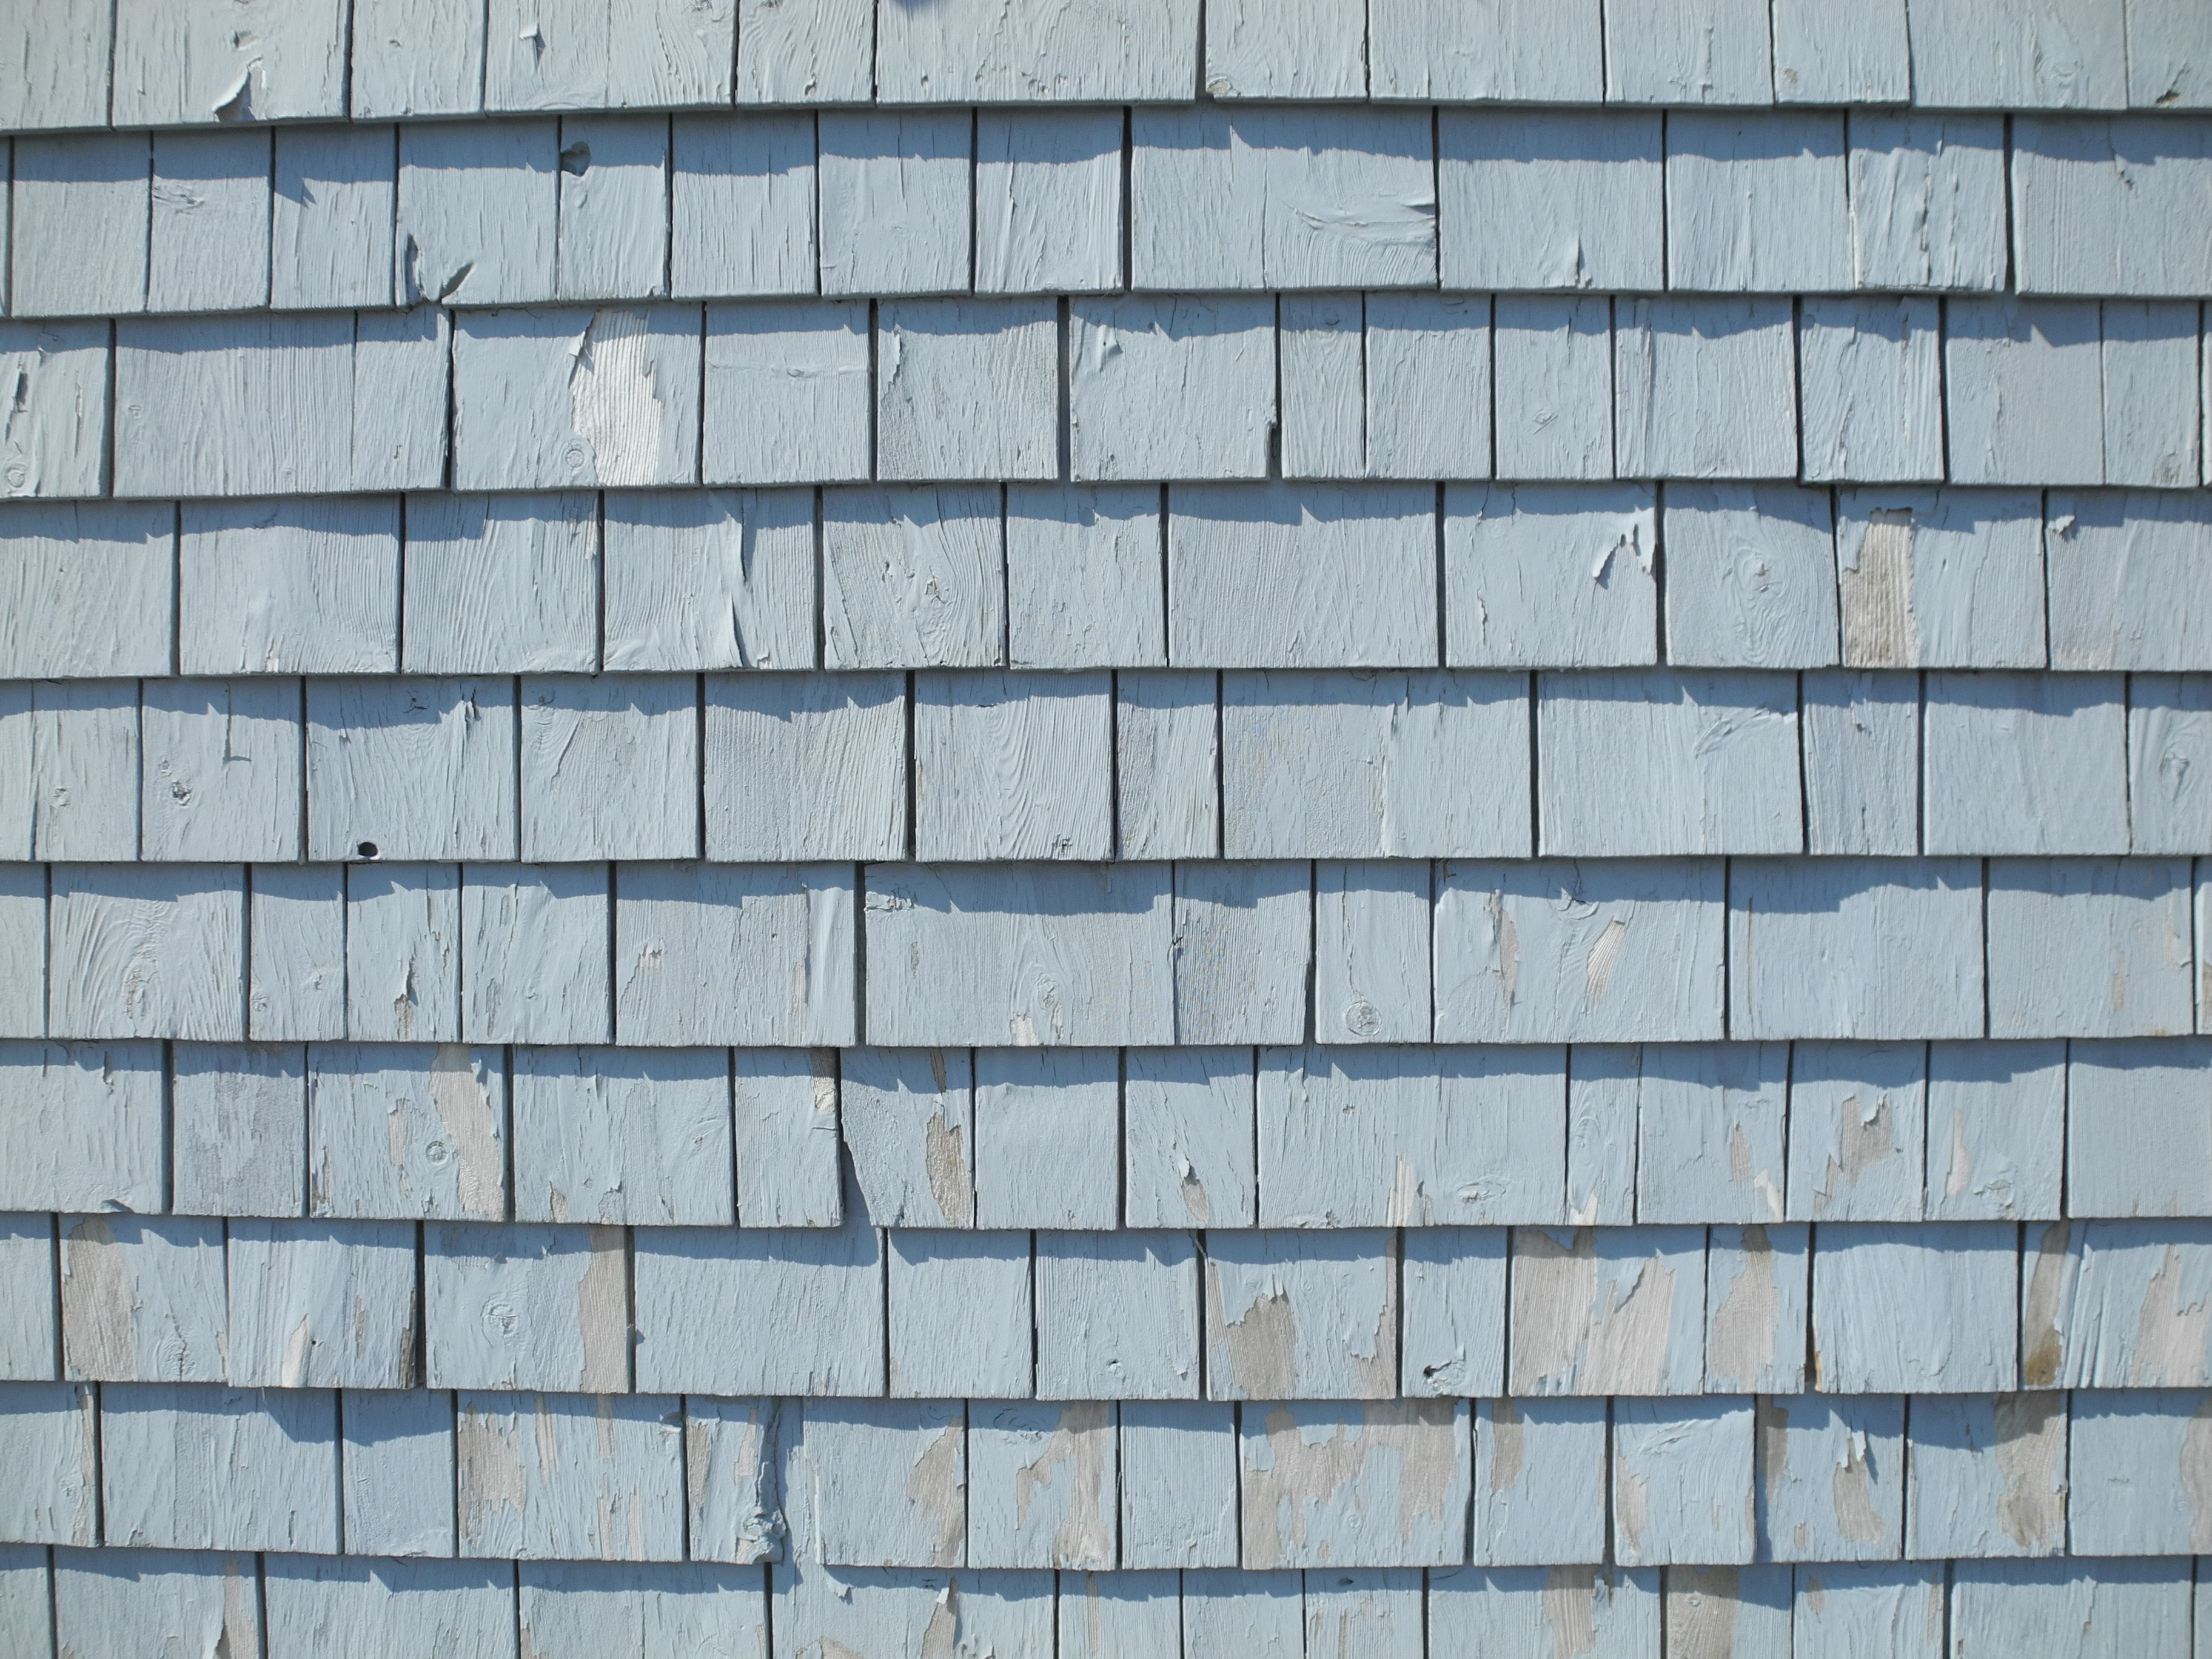 blue and gray wooden wall